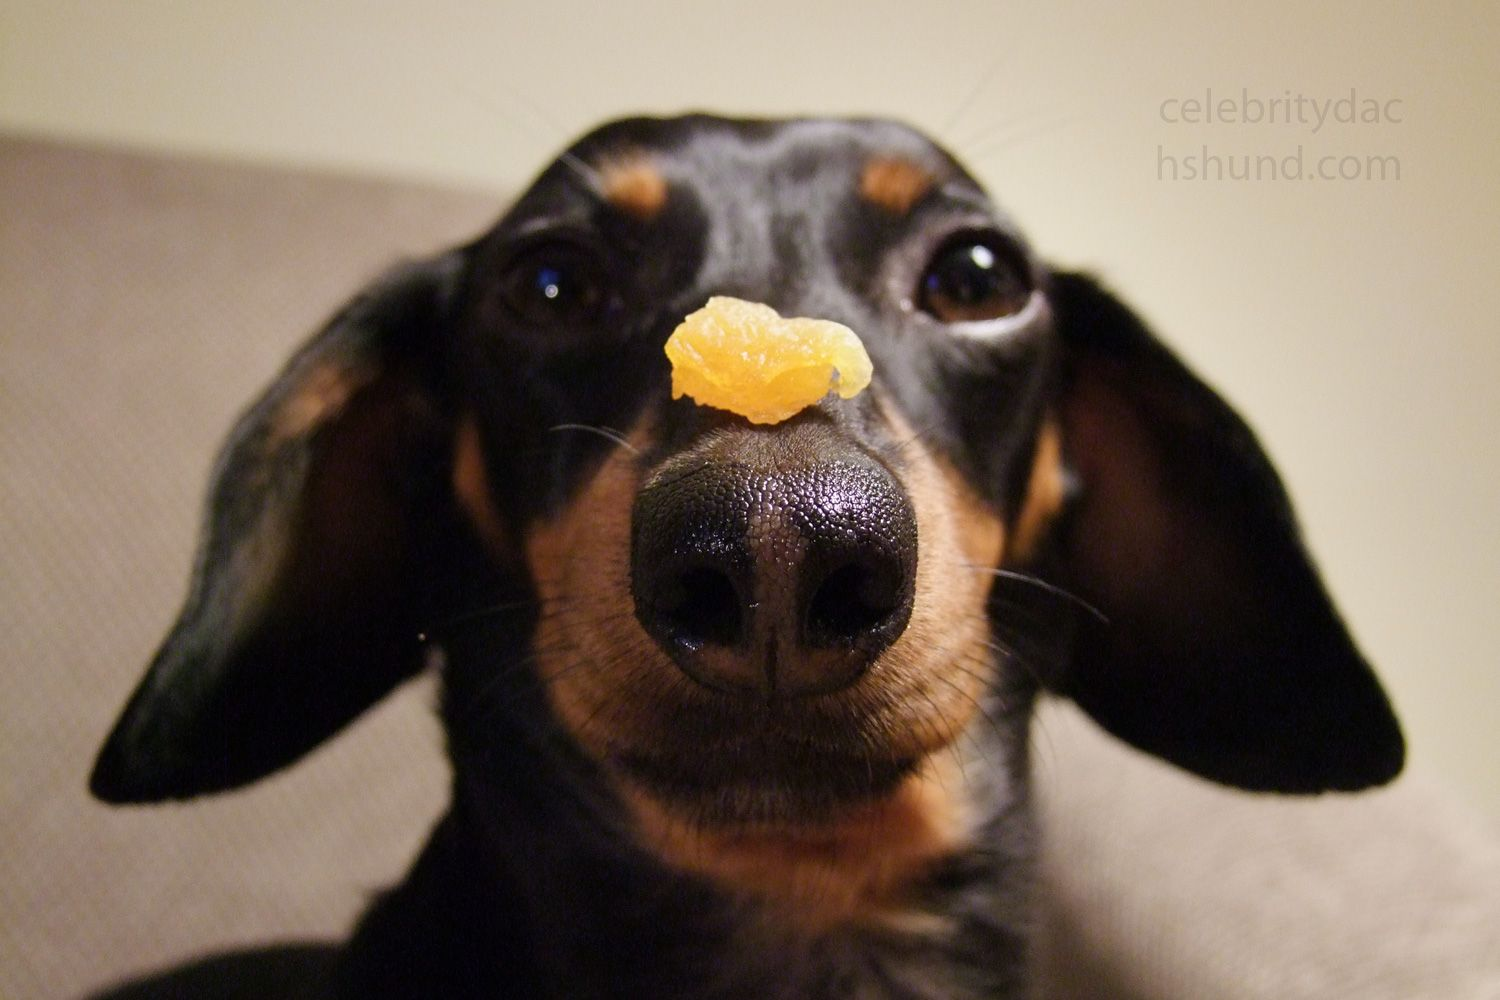 Pin By Crusoe The Celebrity Dachshund On Crusoe The